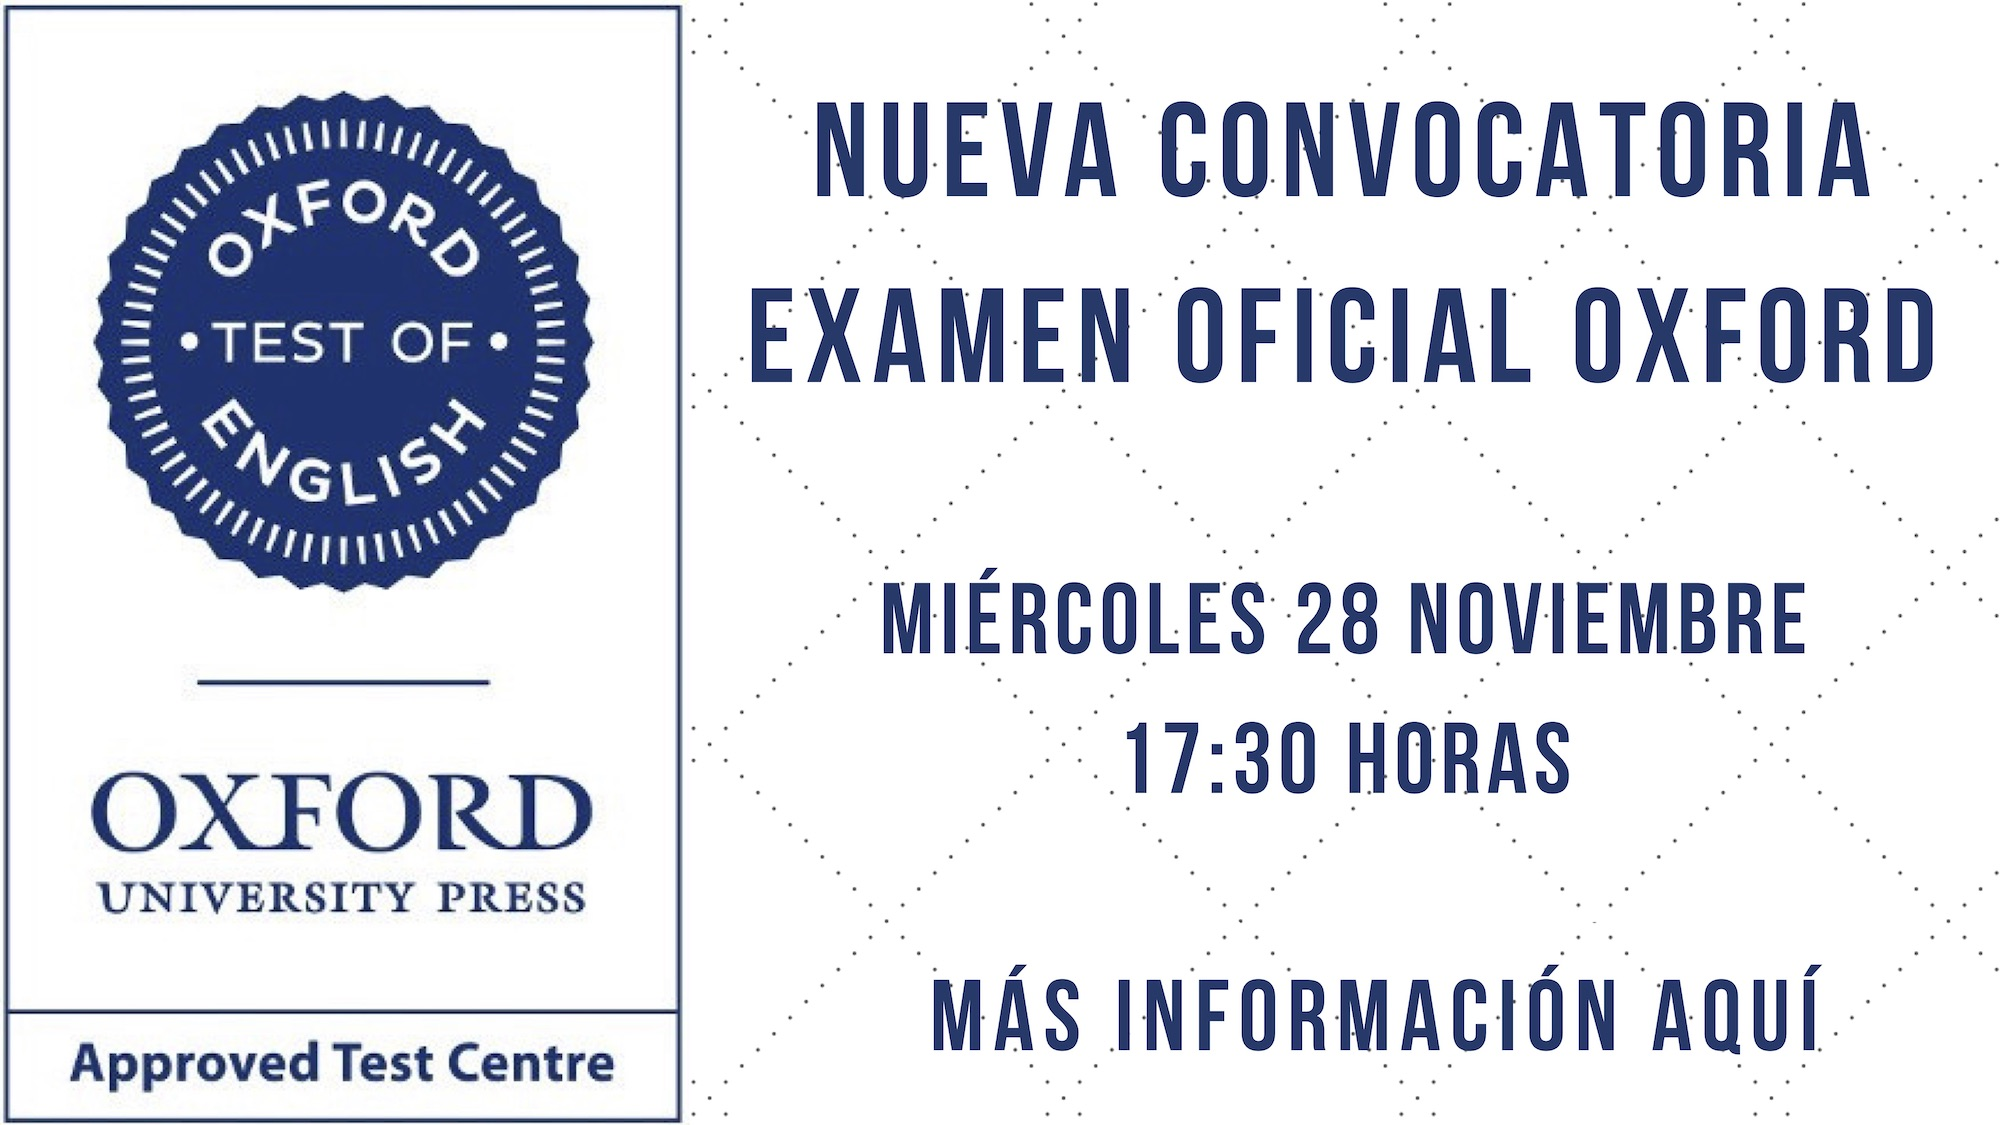 pop uo convocatoria oxford 2